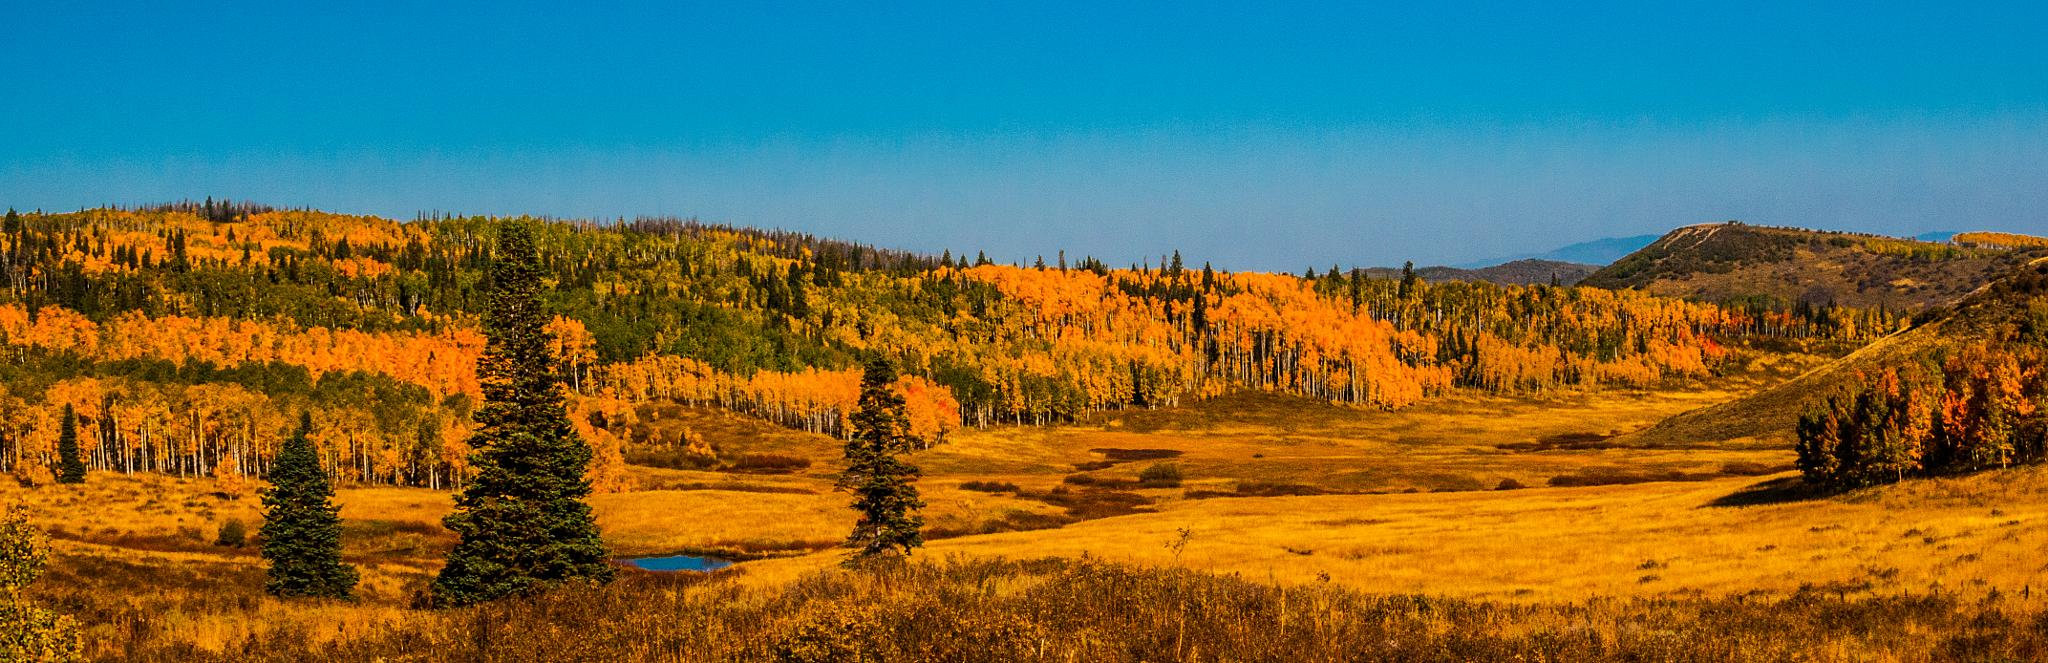 Golden Valley by On A Walk Photography